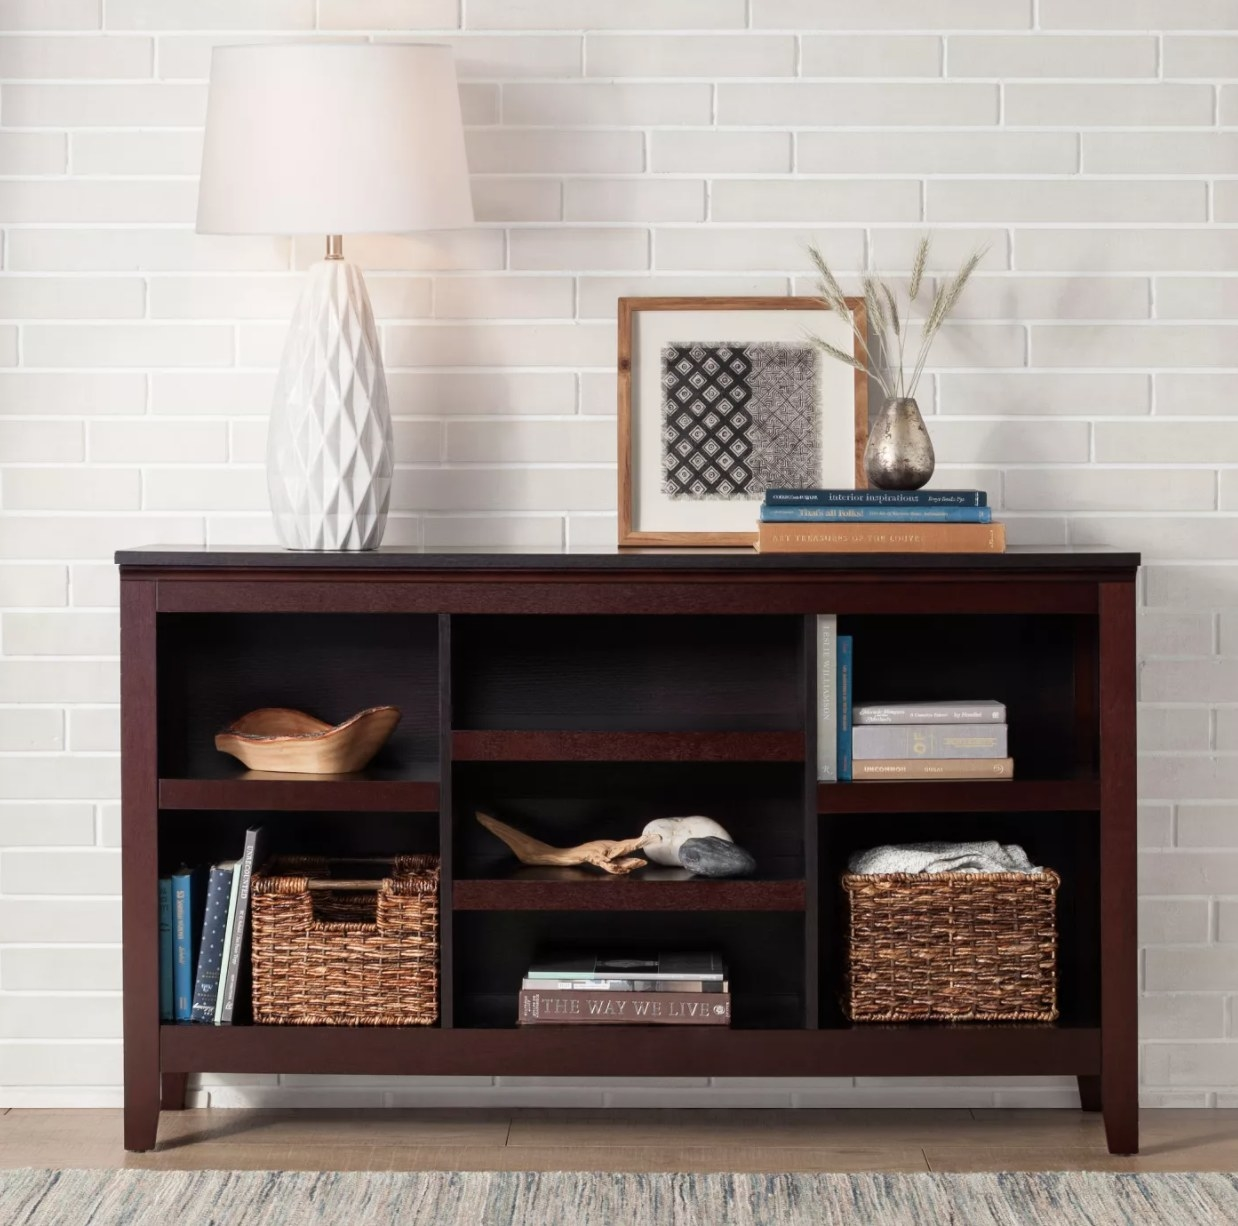 A brown wooden horizontal bookcase with four open shelves